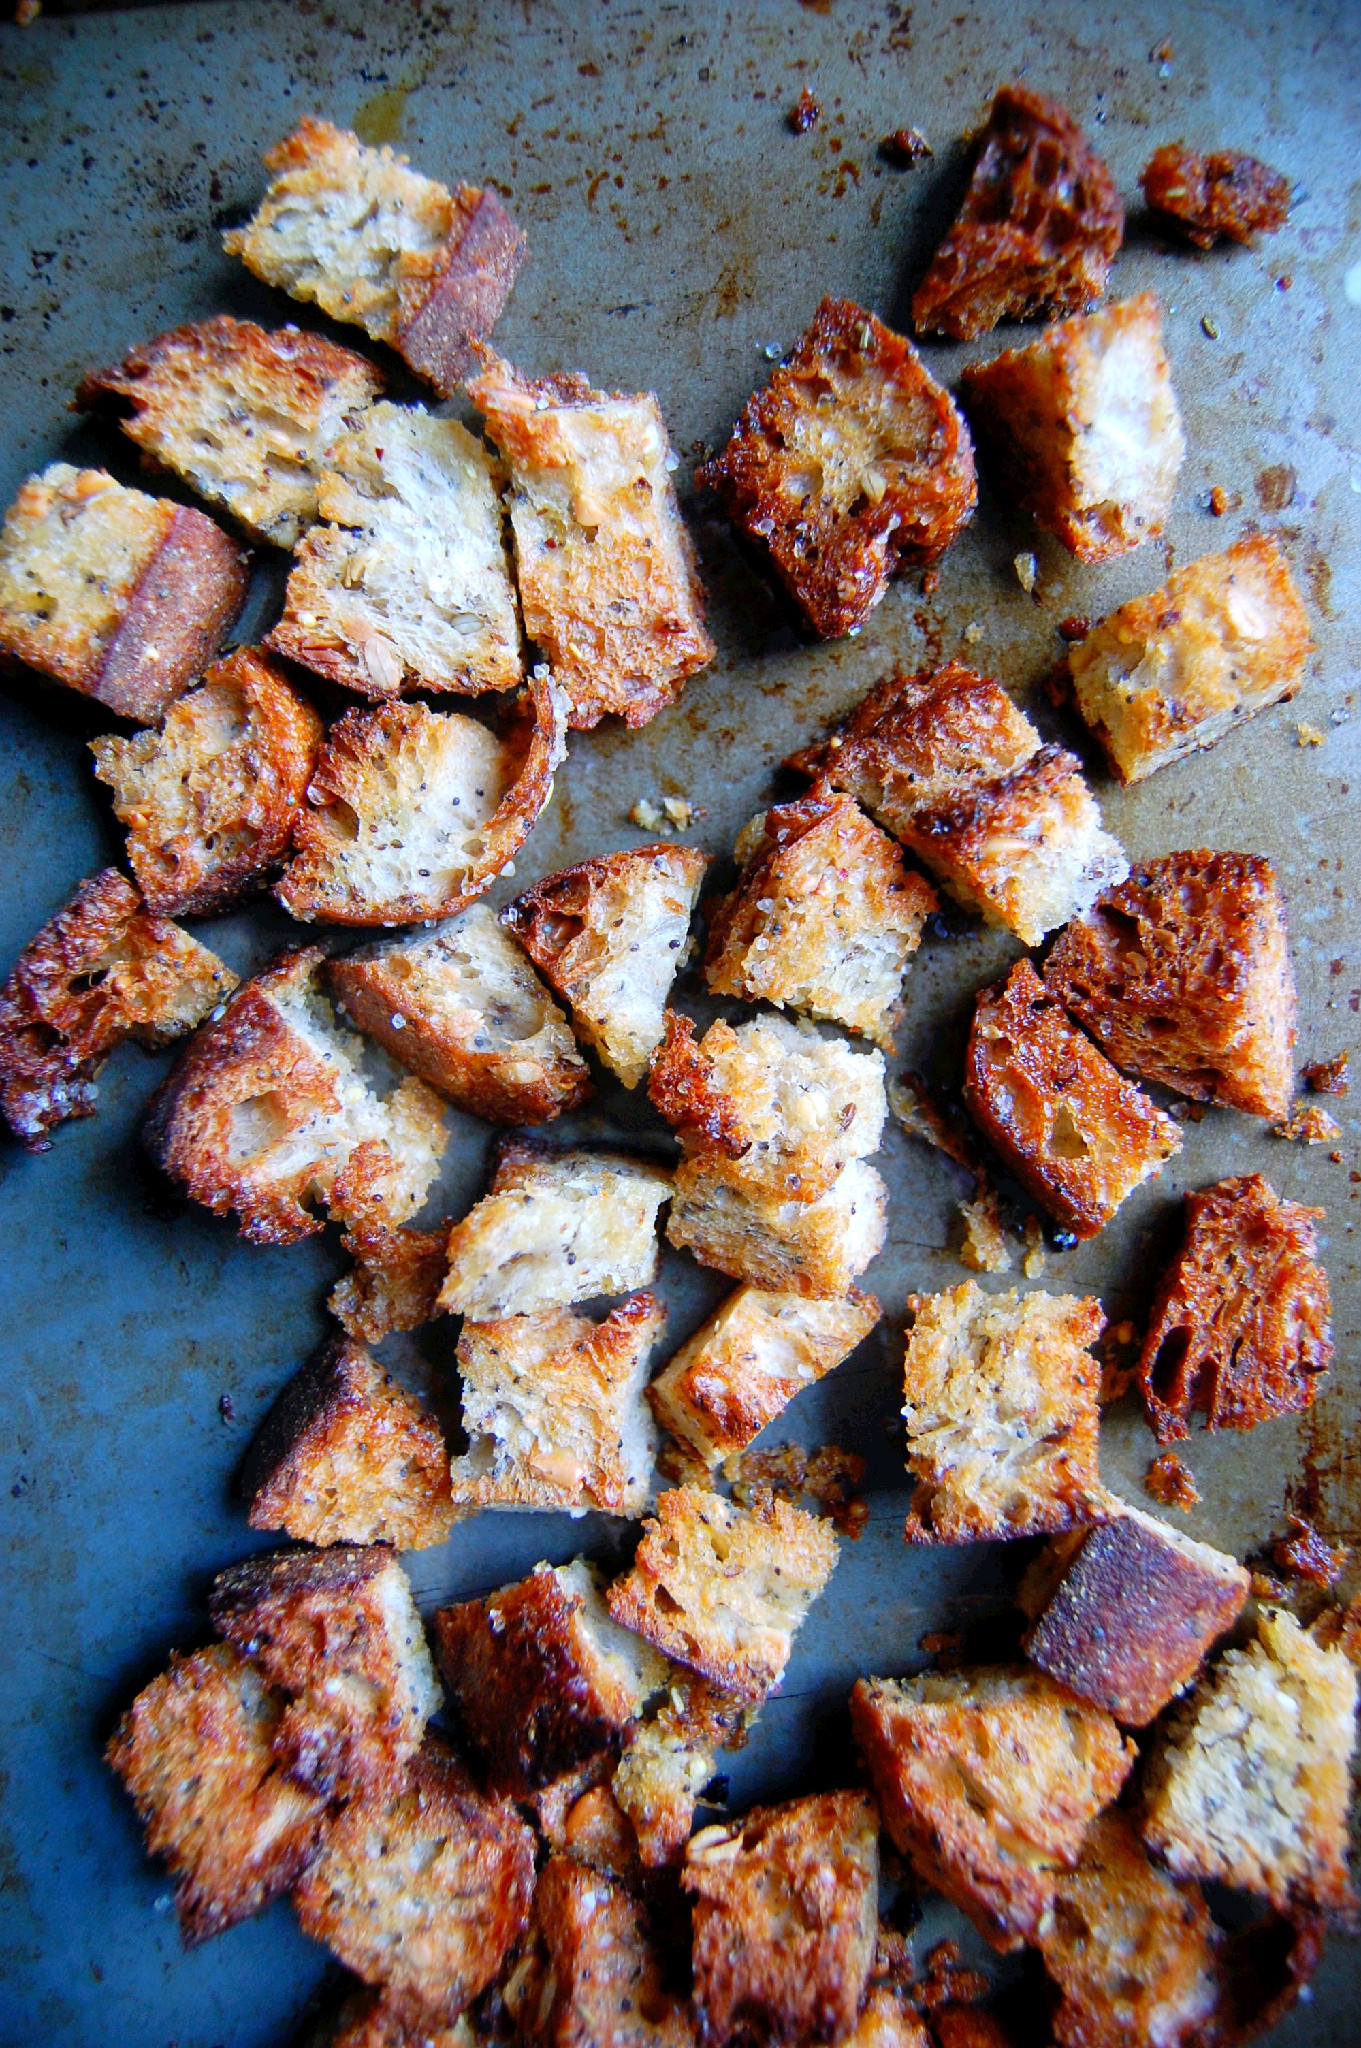 How To Make Incredible Homemade Croutons from Stale Bread! | UprootKitchen.com